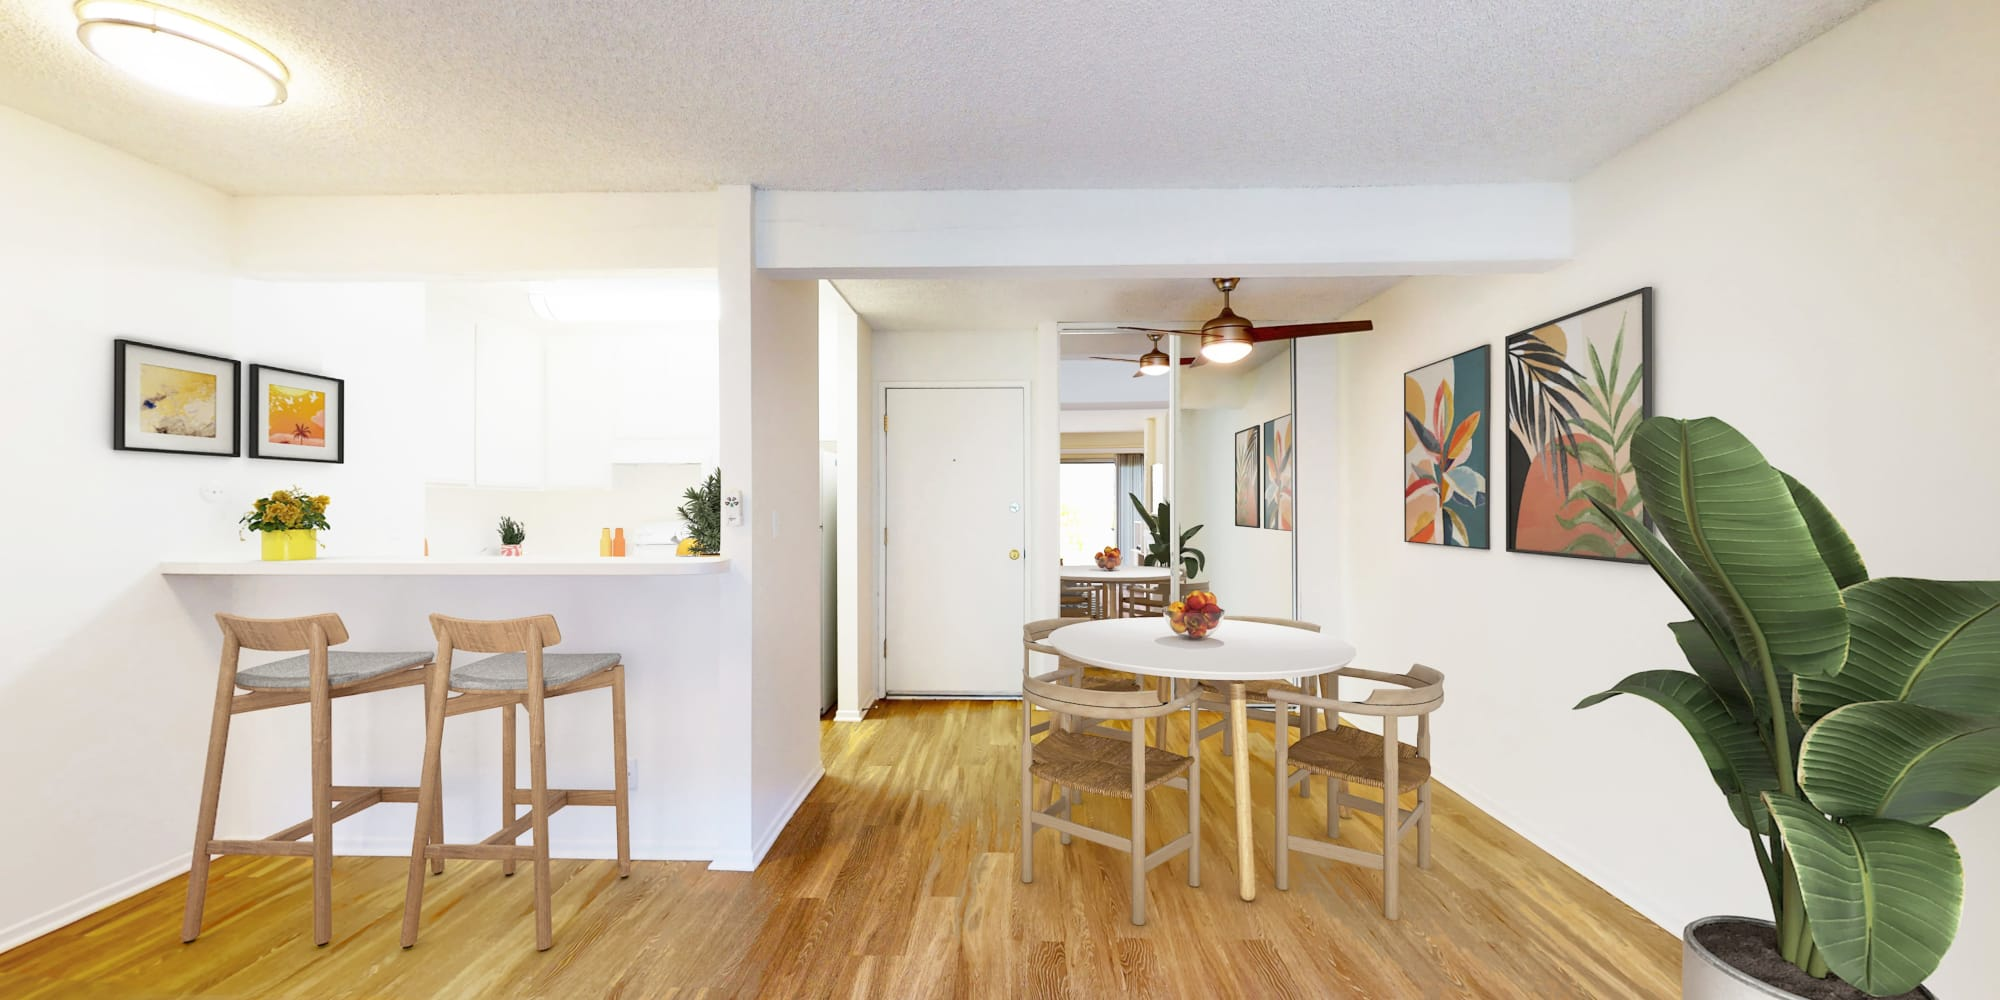 One-bedroom apartment's living and dining areas at Village Pointe in Northridge, California